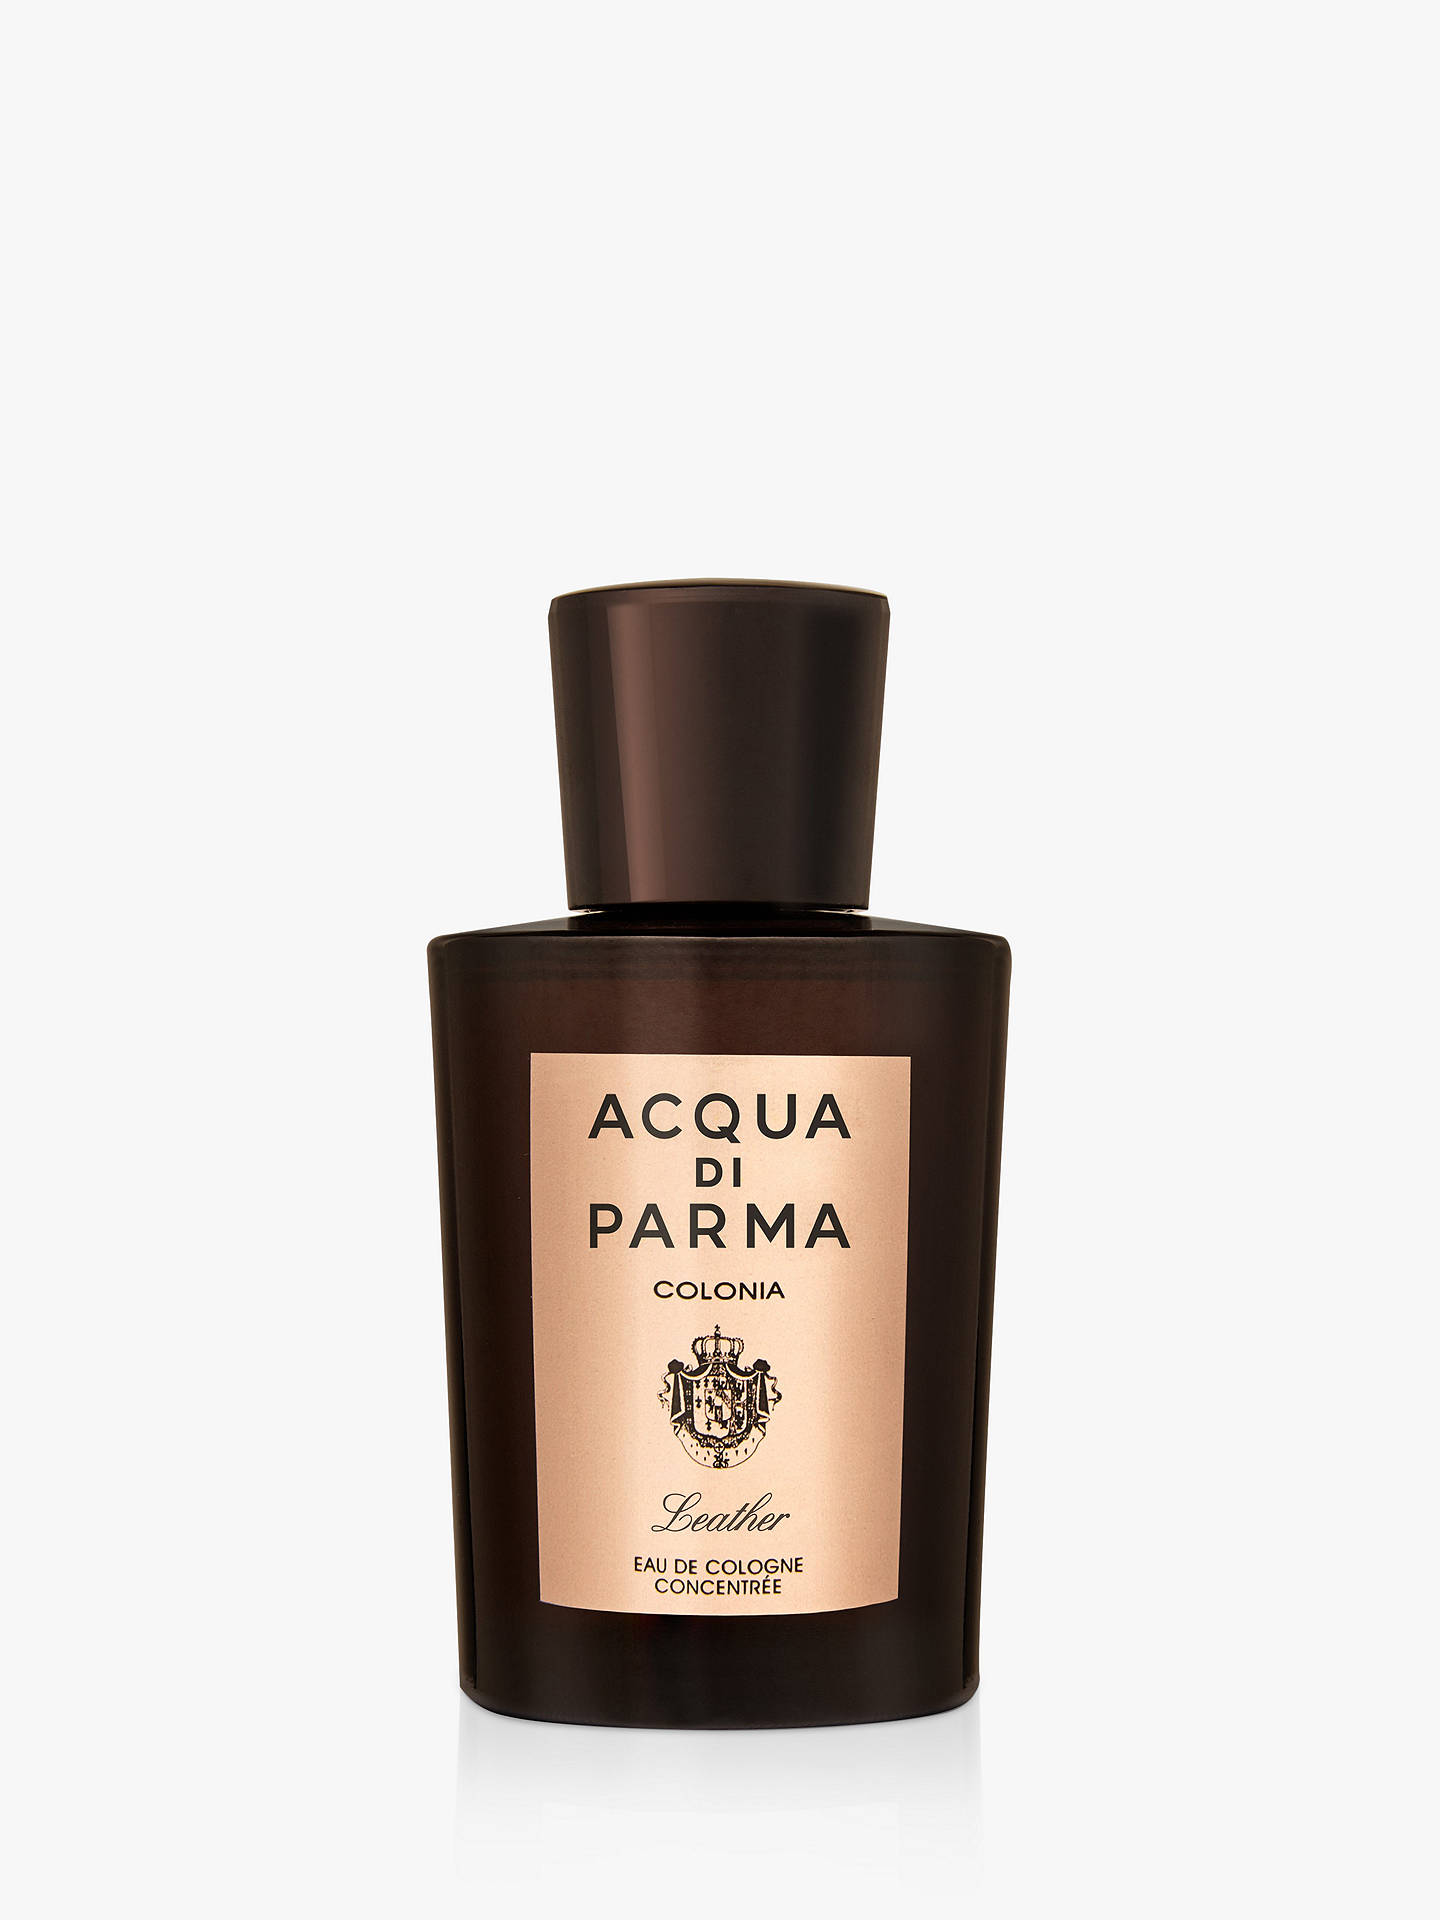 BuyAcqua di Parma Colonia Leather Eau de Cologne Concentrée, 100ml Online at johnlewis.com